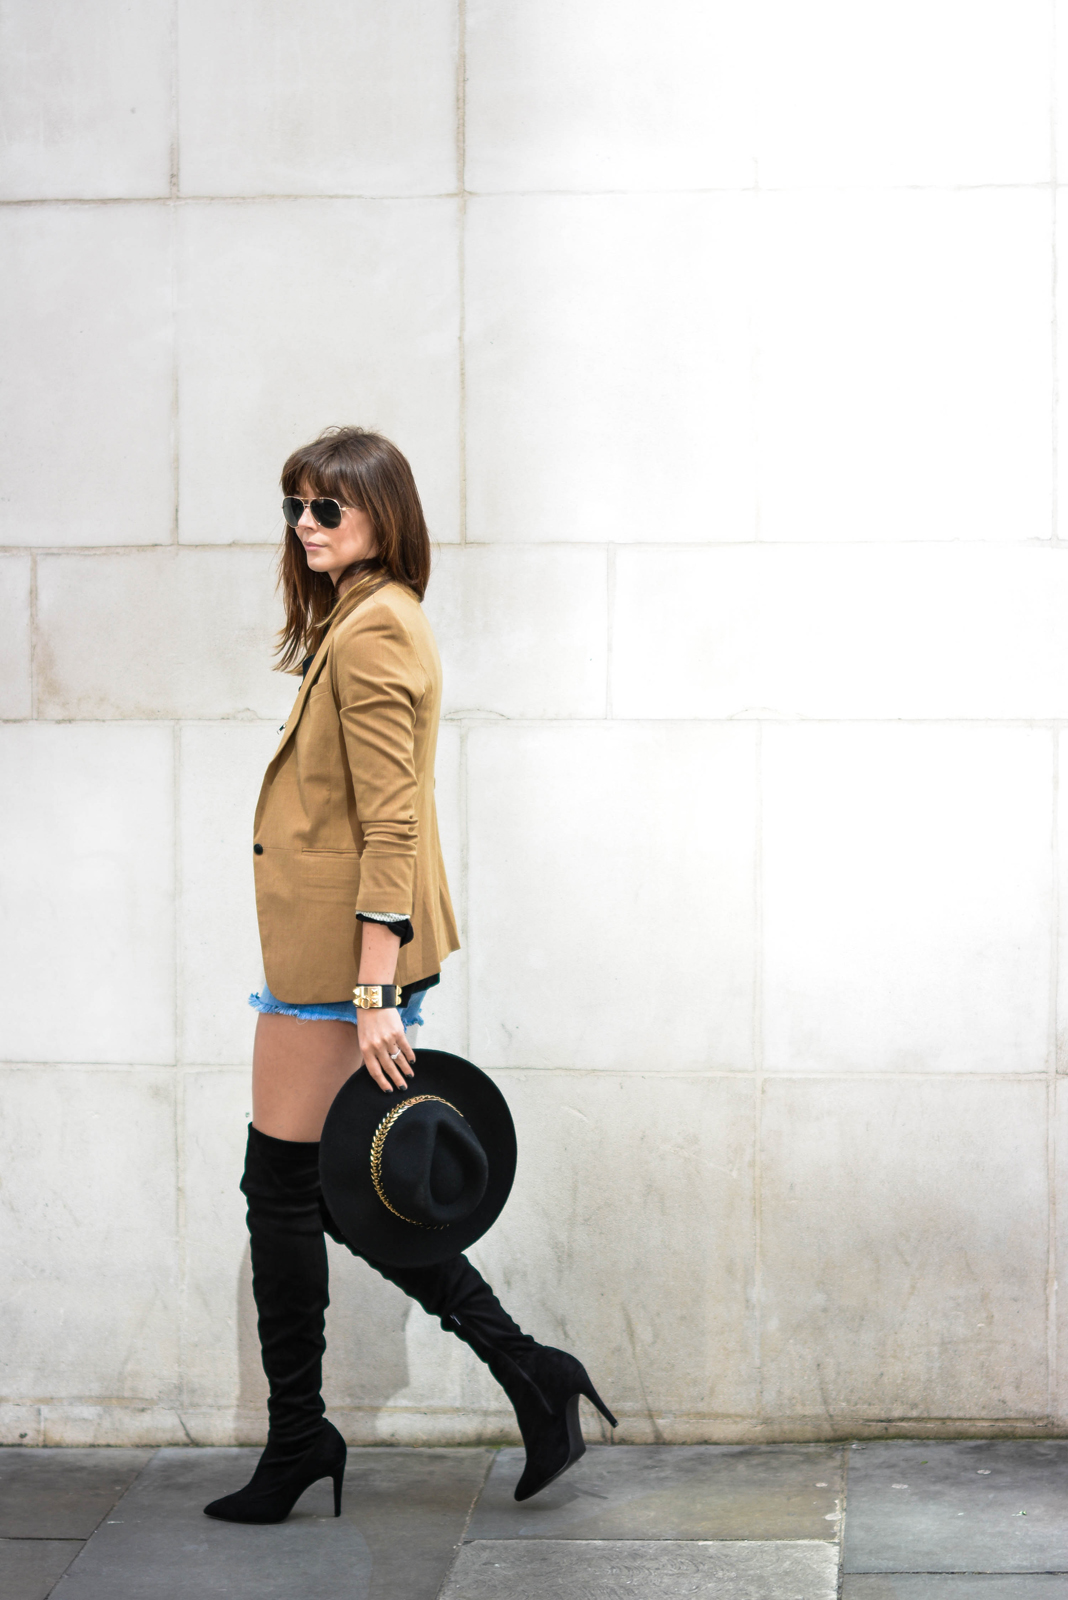 EJSTYLE - Emma Hill wearing Camel blazer, black suede thigh high OTK boots, Fedora hat, denim shorts, aviator sunglasses